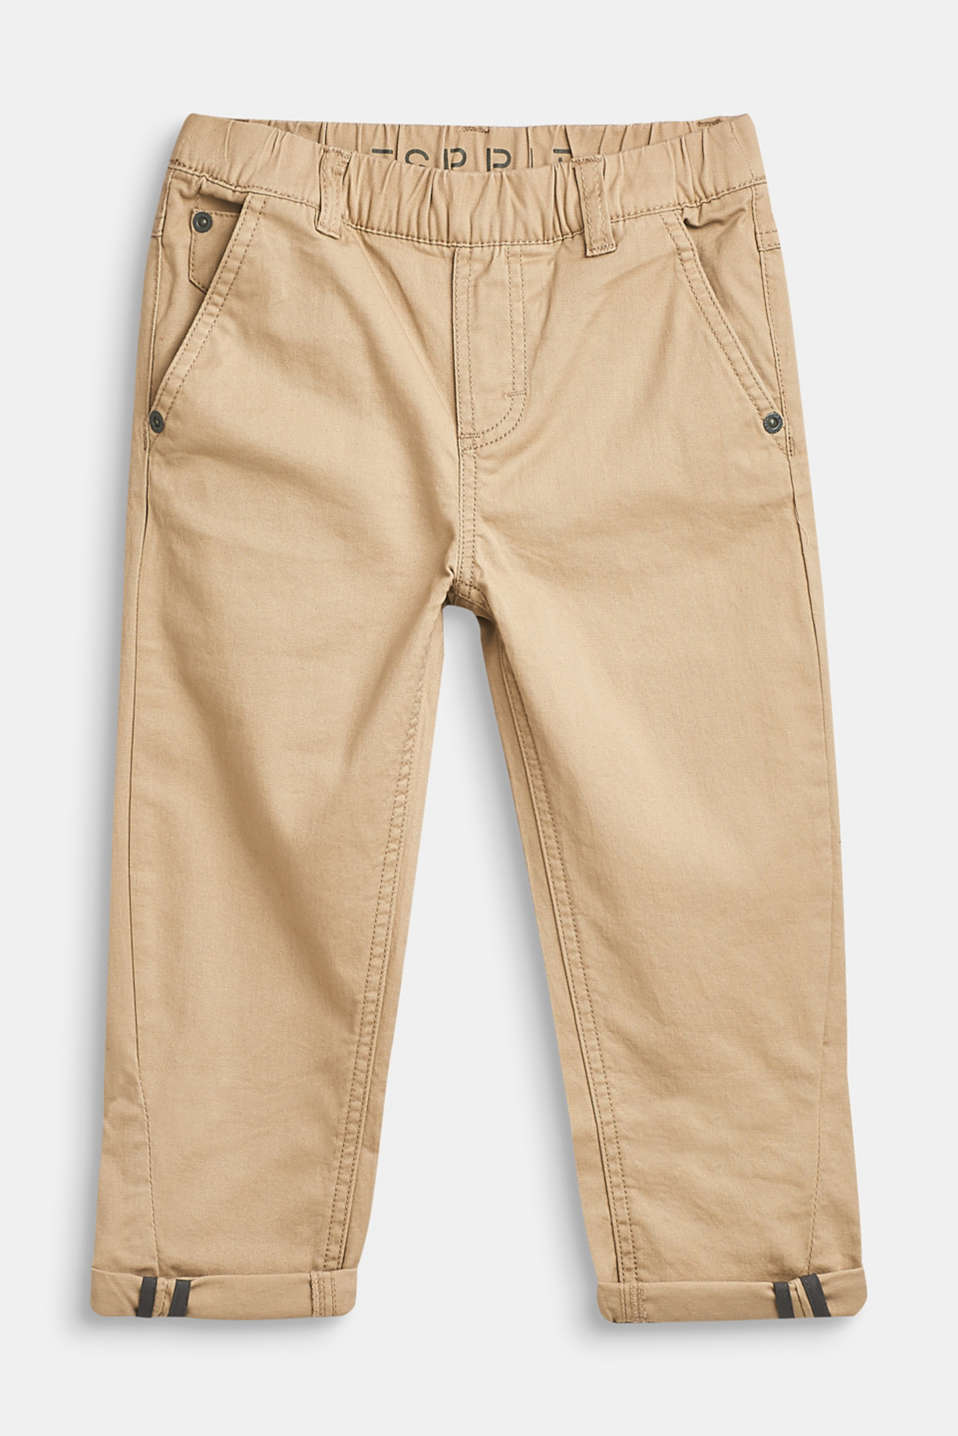 Esprit - Stretch cotton trousers with an elasticated waistband